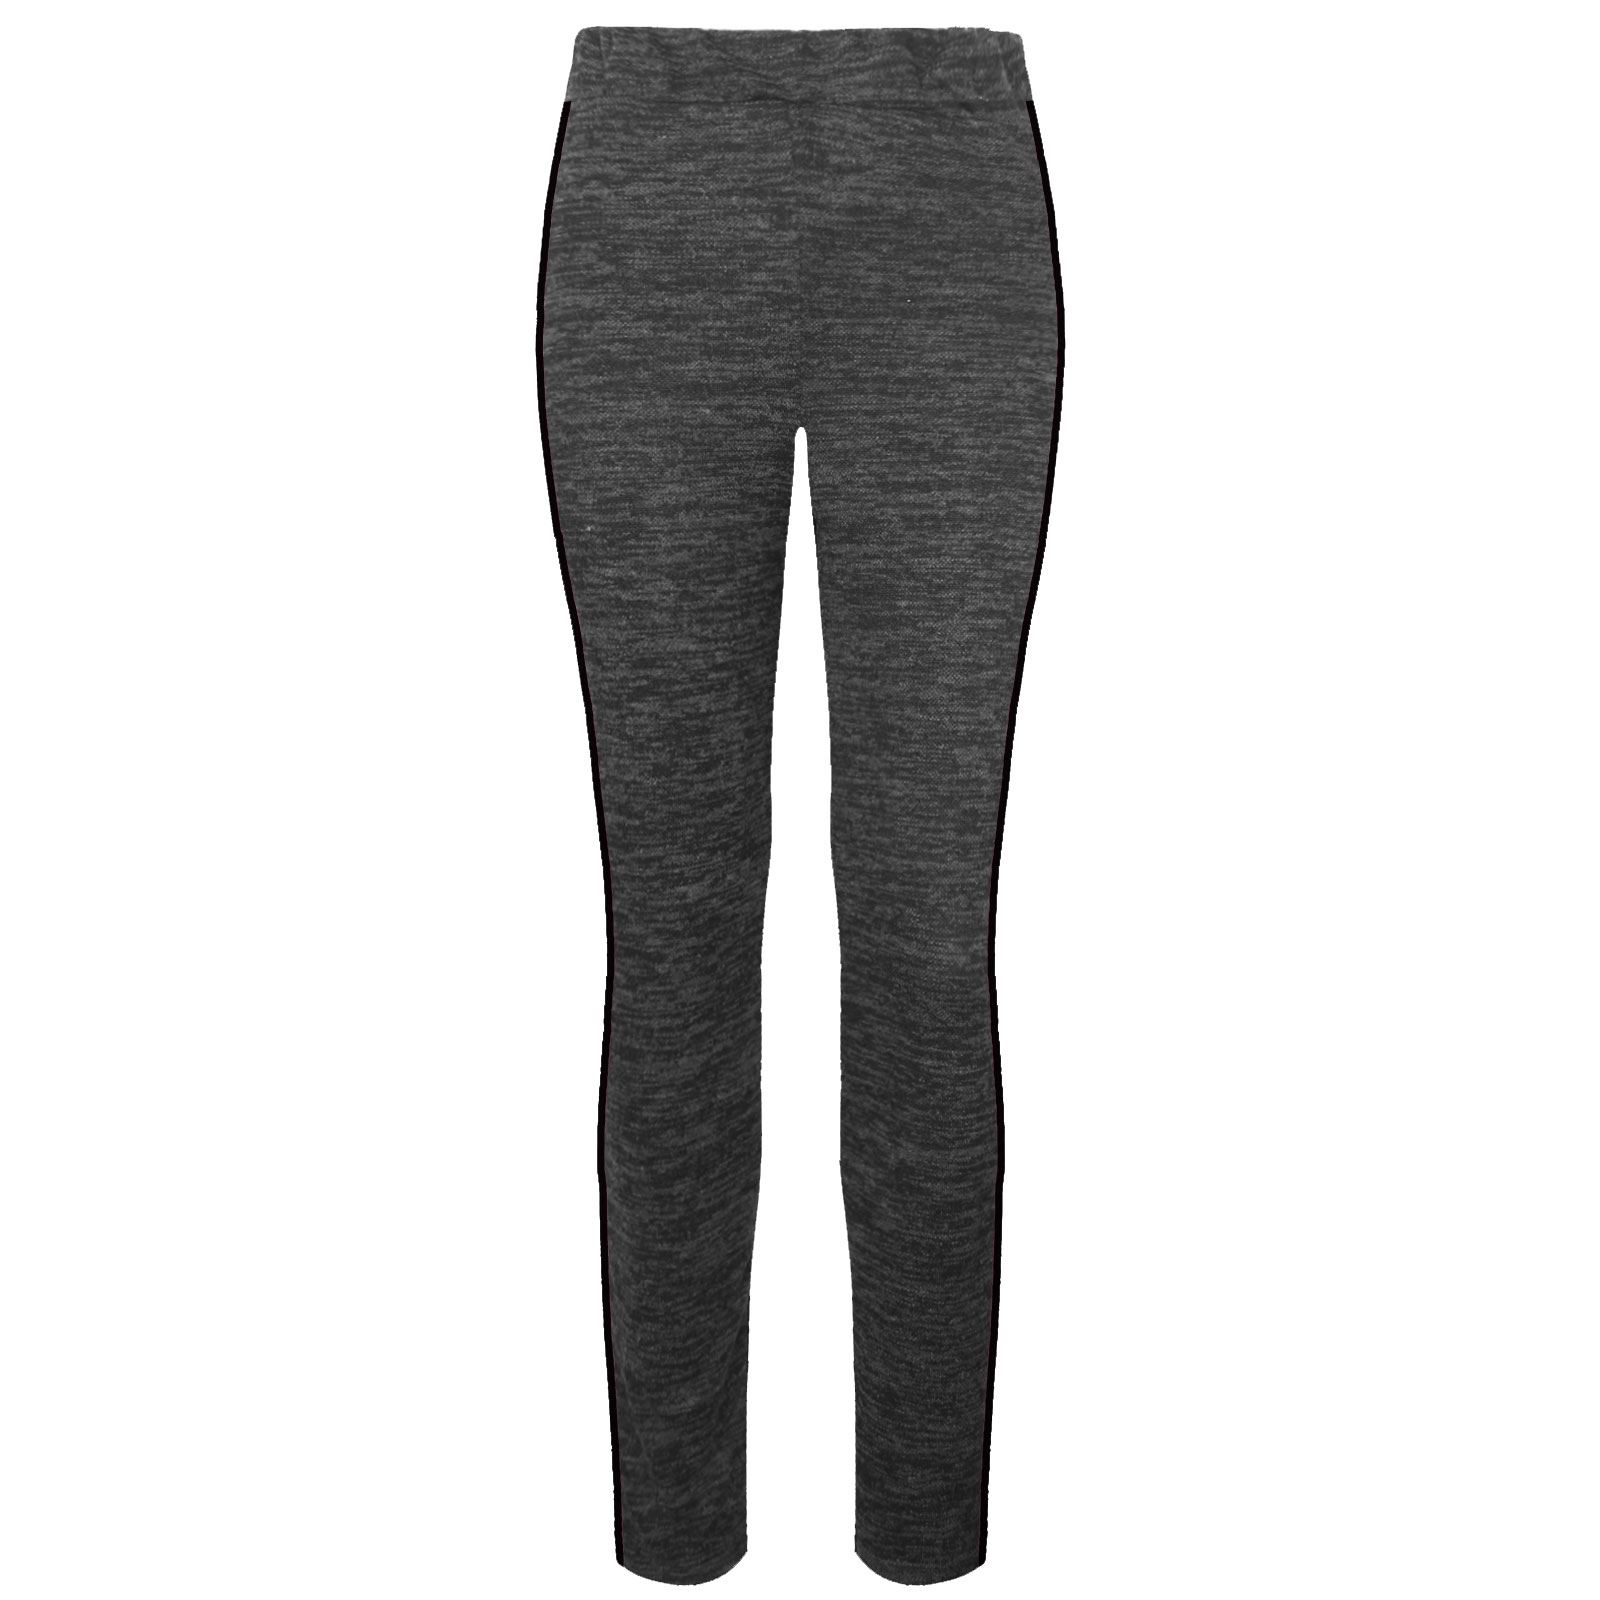 WOMENS-LADIES-SIDE-STRIPE-TAPERED-TROUSERS-JERSEY-PANT-ELASTICATED-WAIST-TROUSER